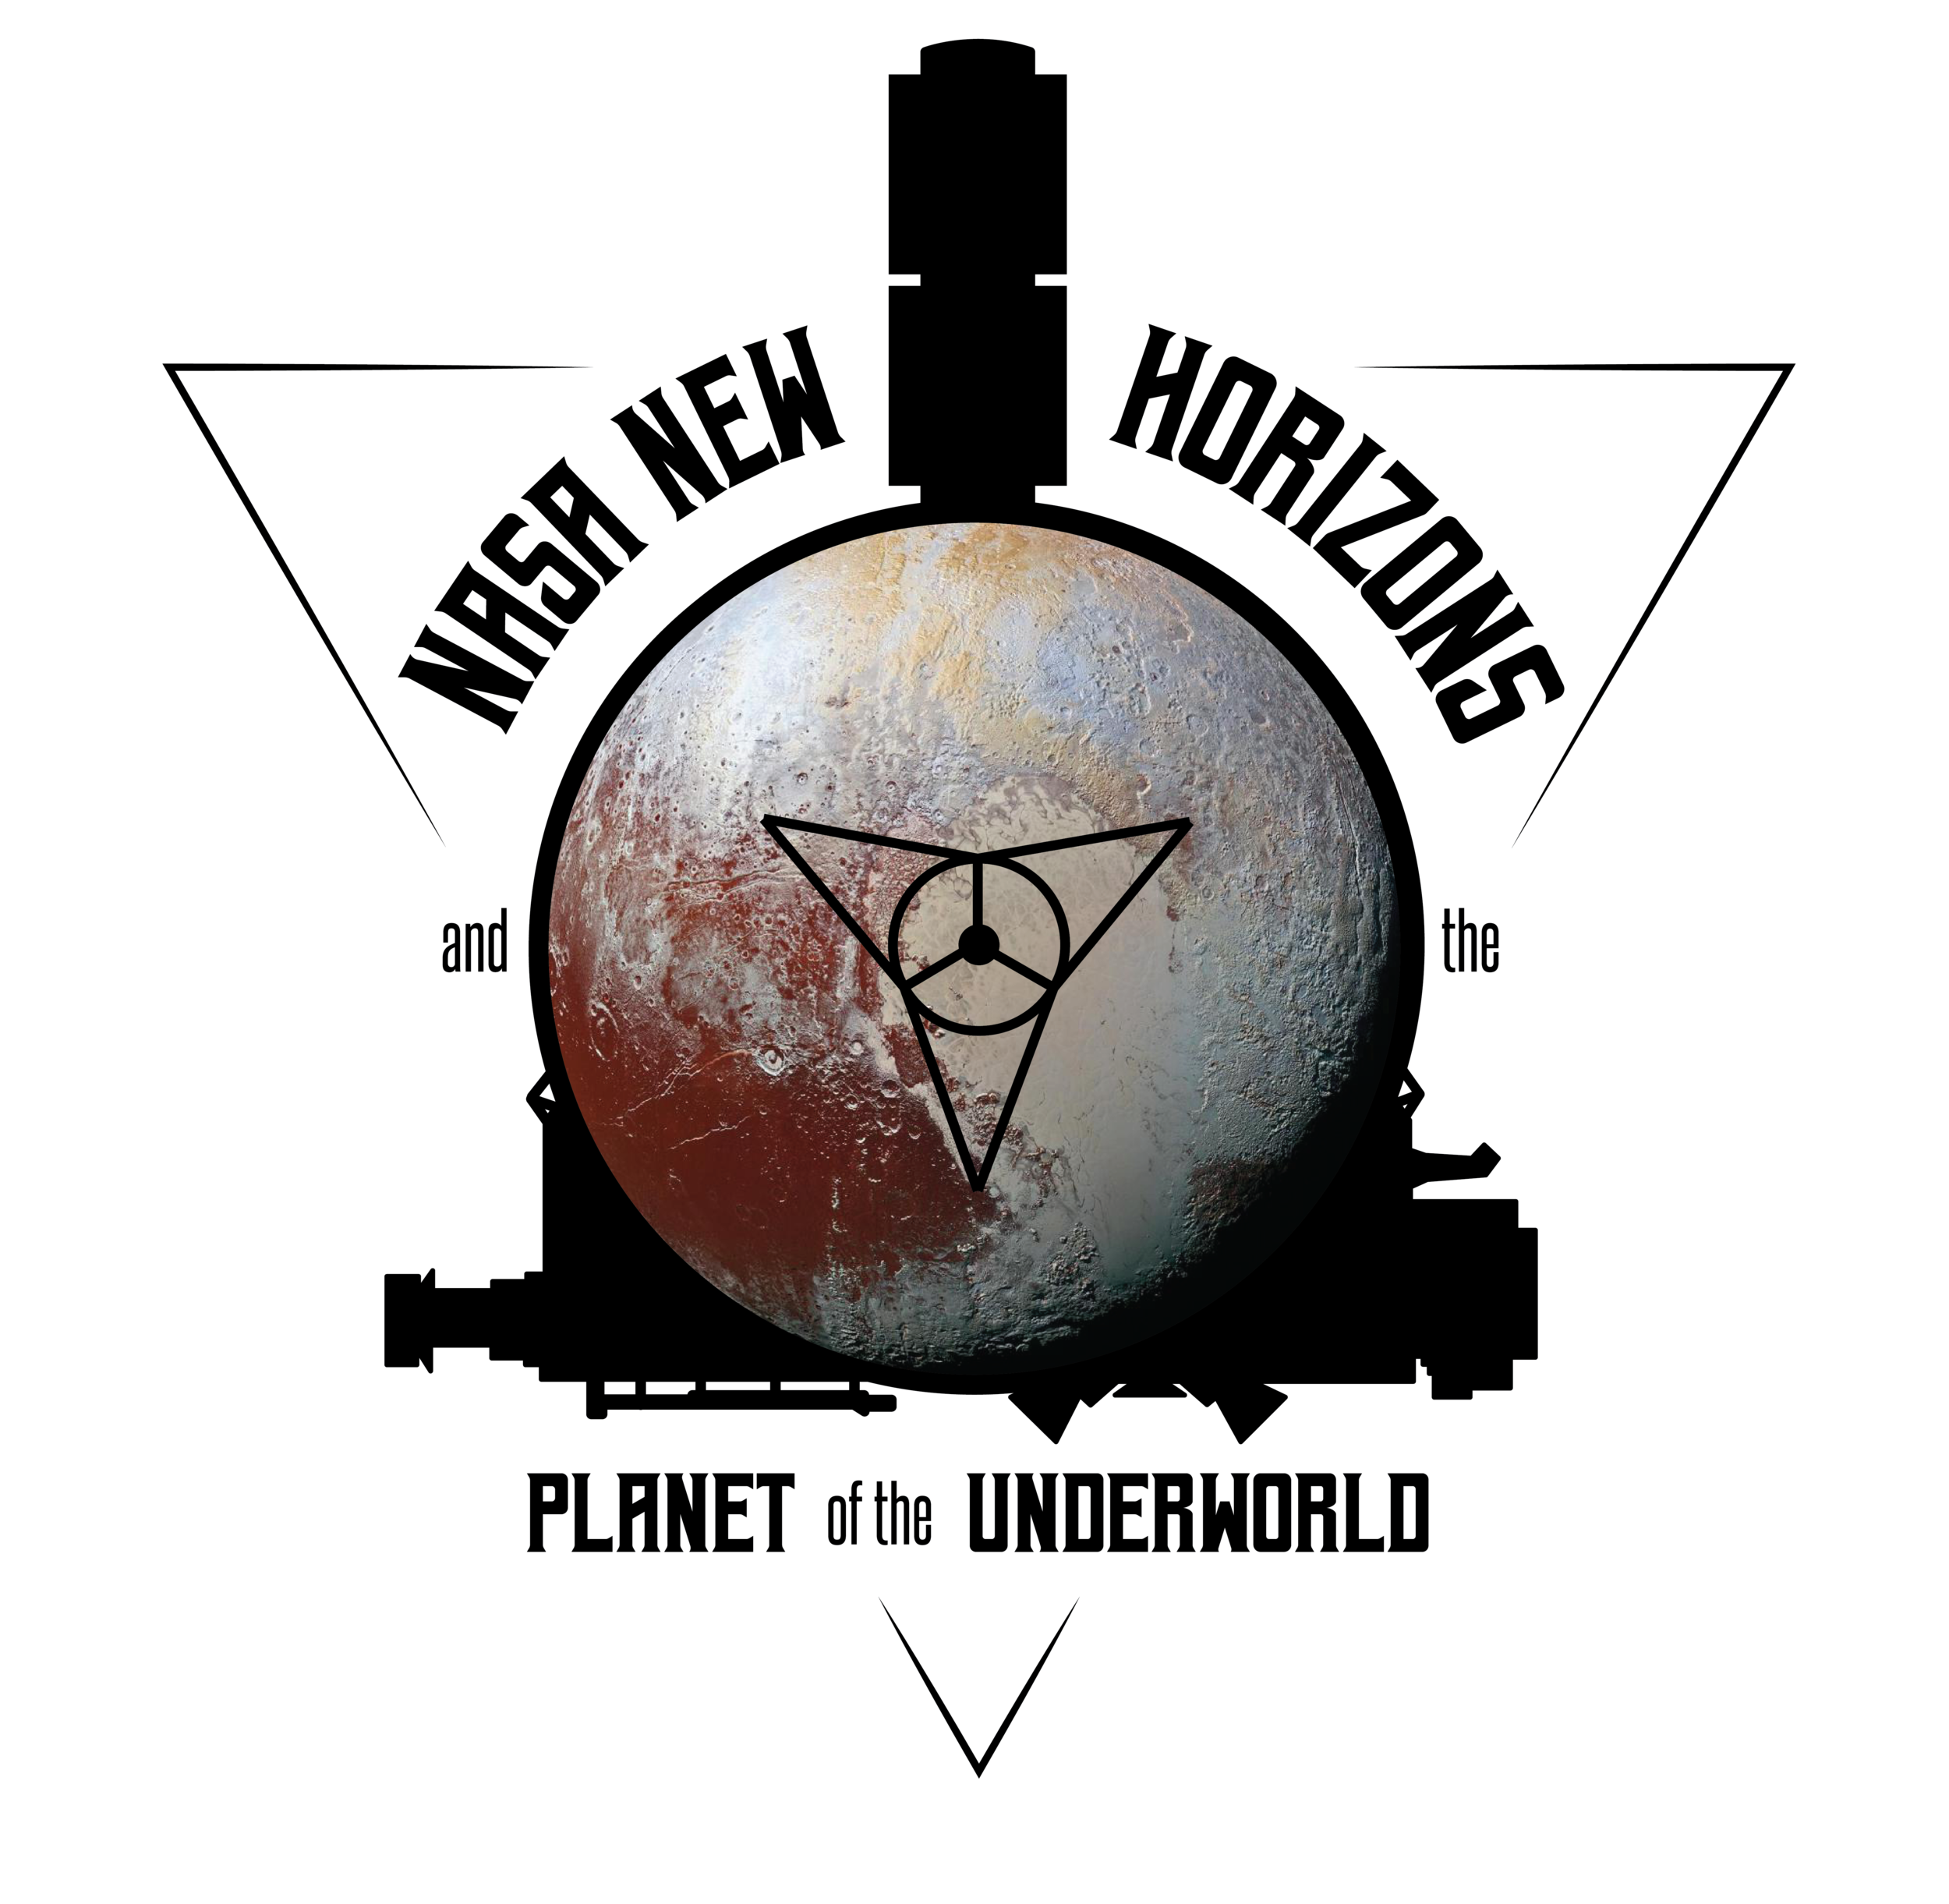 New Horizons and the Planet of the Underworld